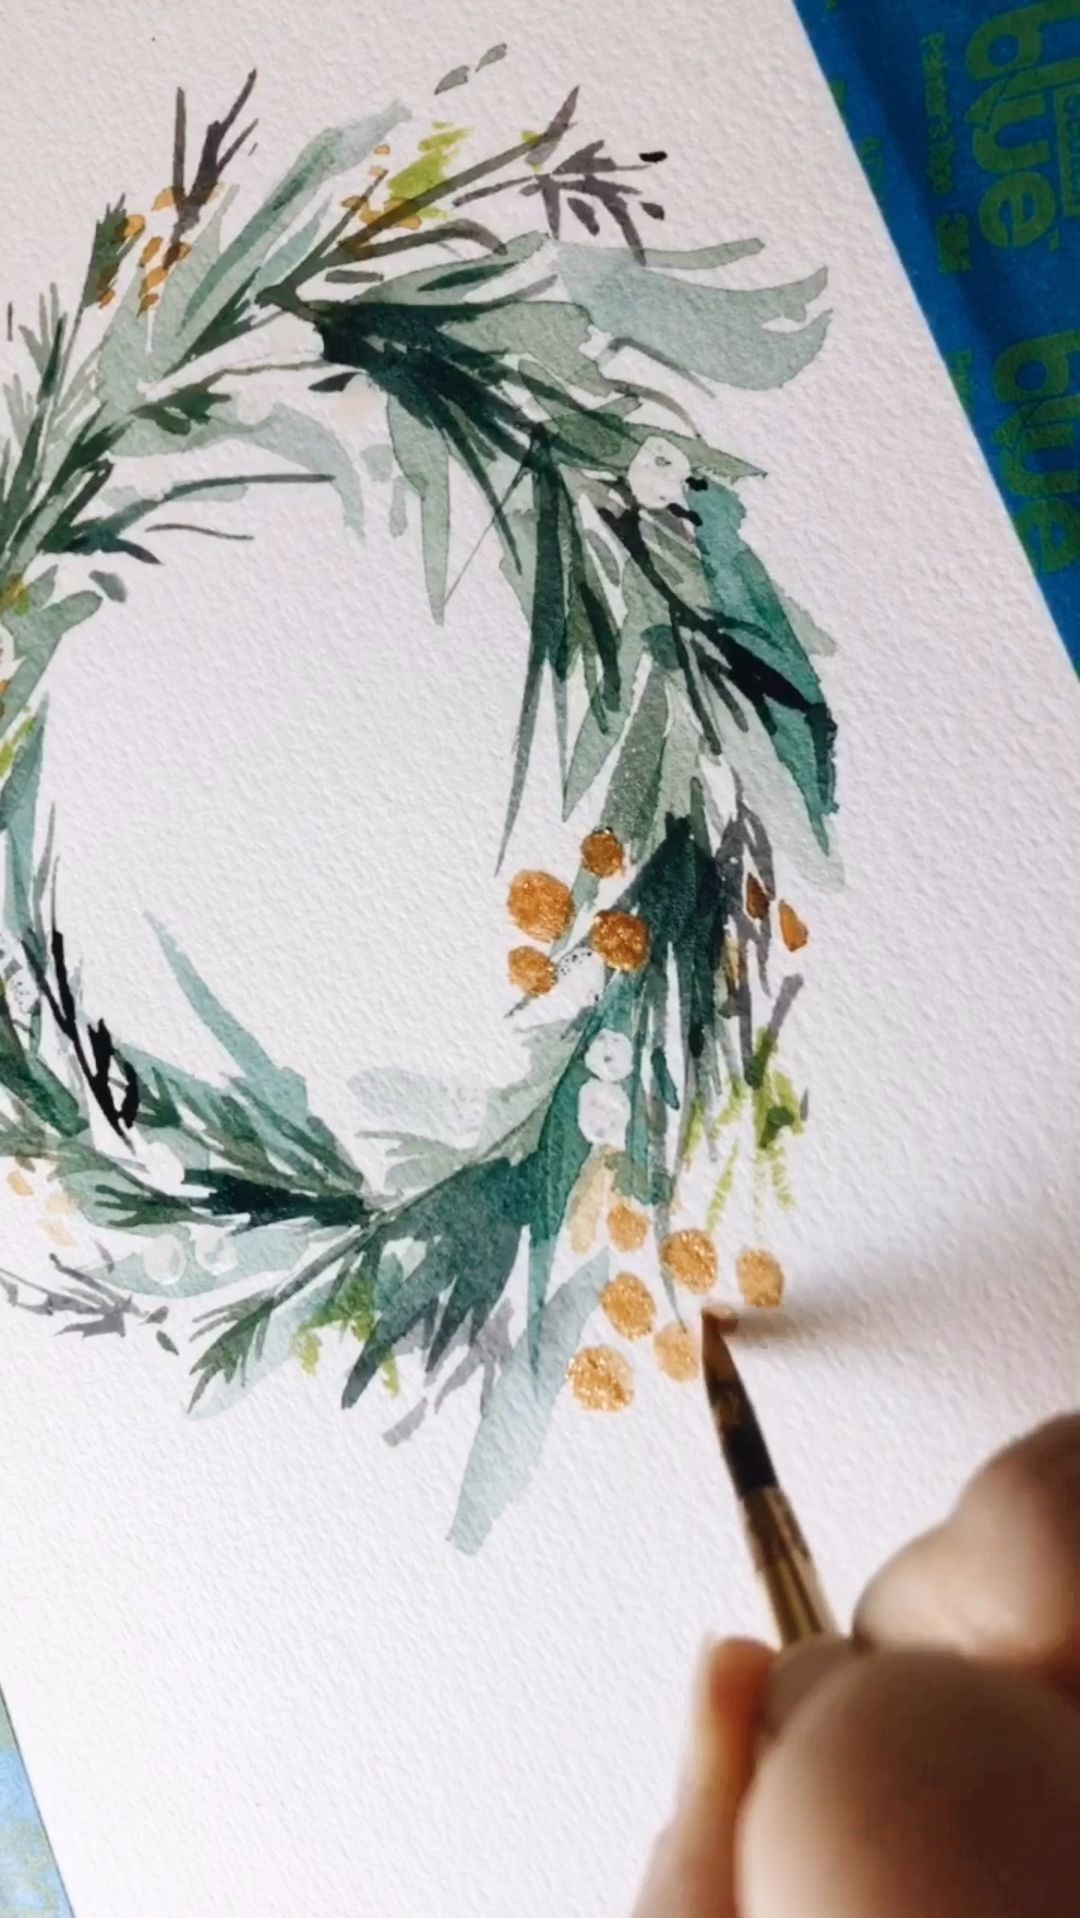 Adding gold details to this holiday wreath by @leahbischstudio #christmas #holidaydecor #watercolor #gouache #painting #workinprogress